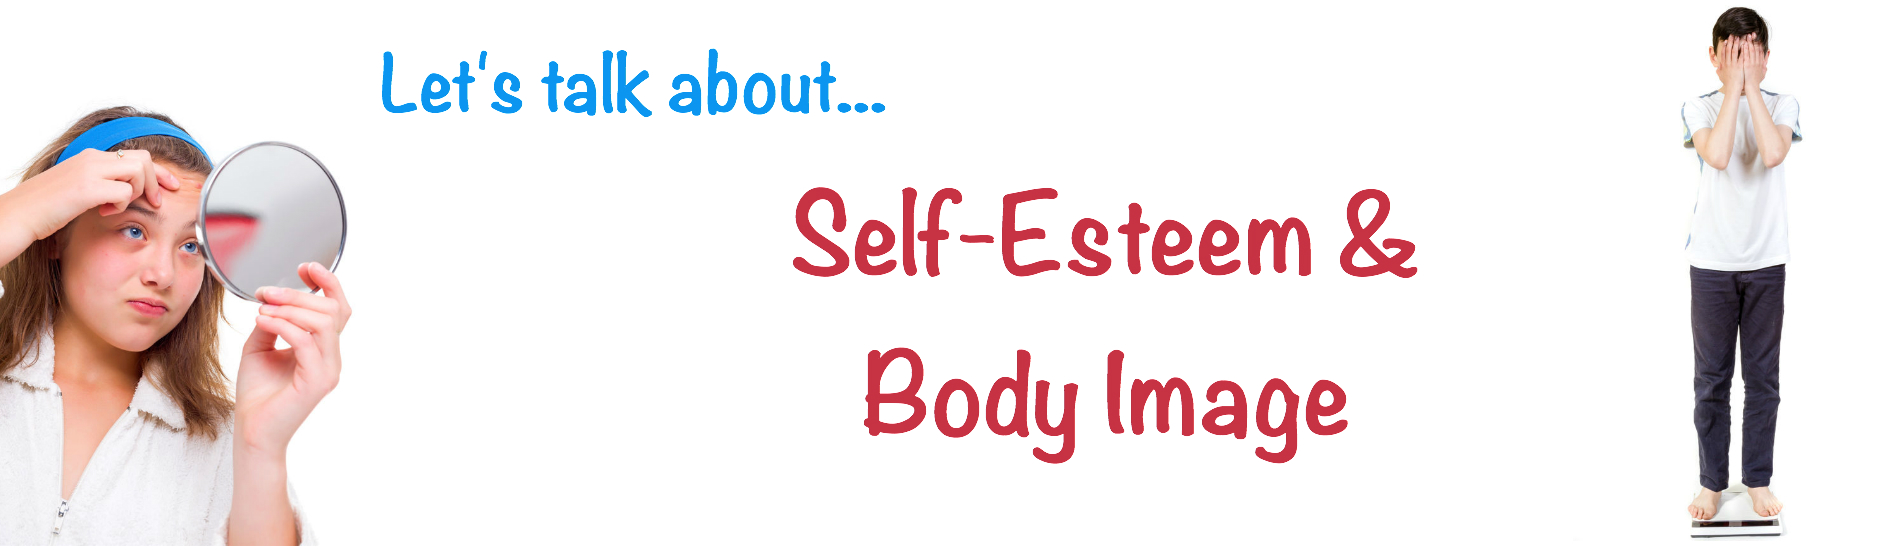 body image and self esteem thesis The negative body image that can come from such media exposure can  media  images can damage one's self-worth by altering society's.